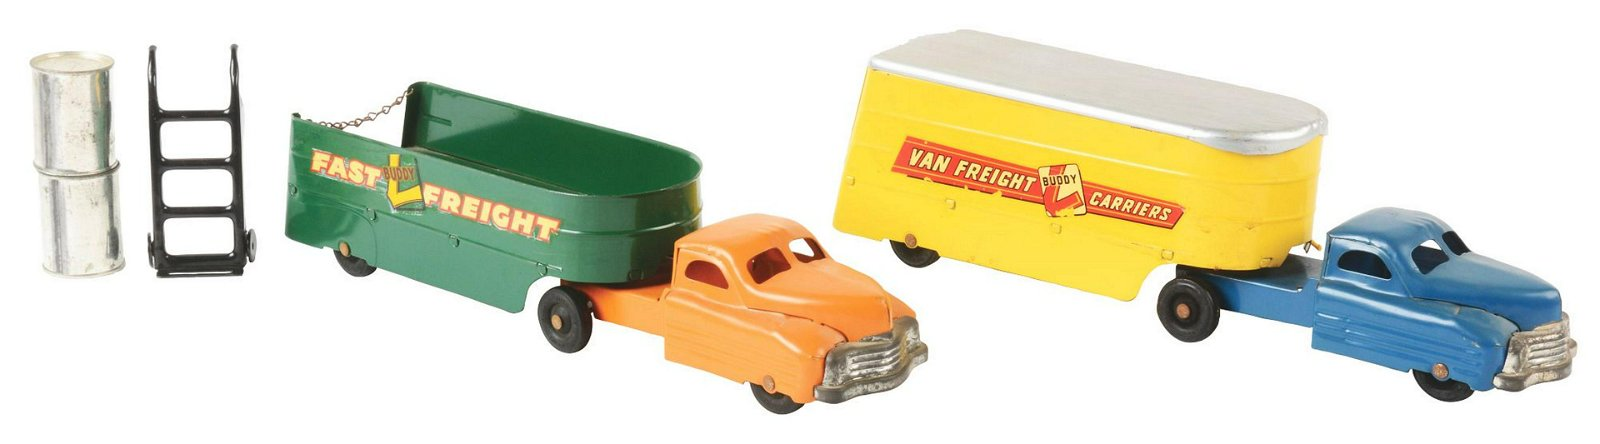 Lot of 2: Buddy L Pressed Steel Trailer Vehicle Toys.